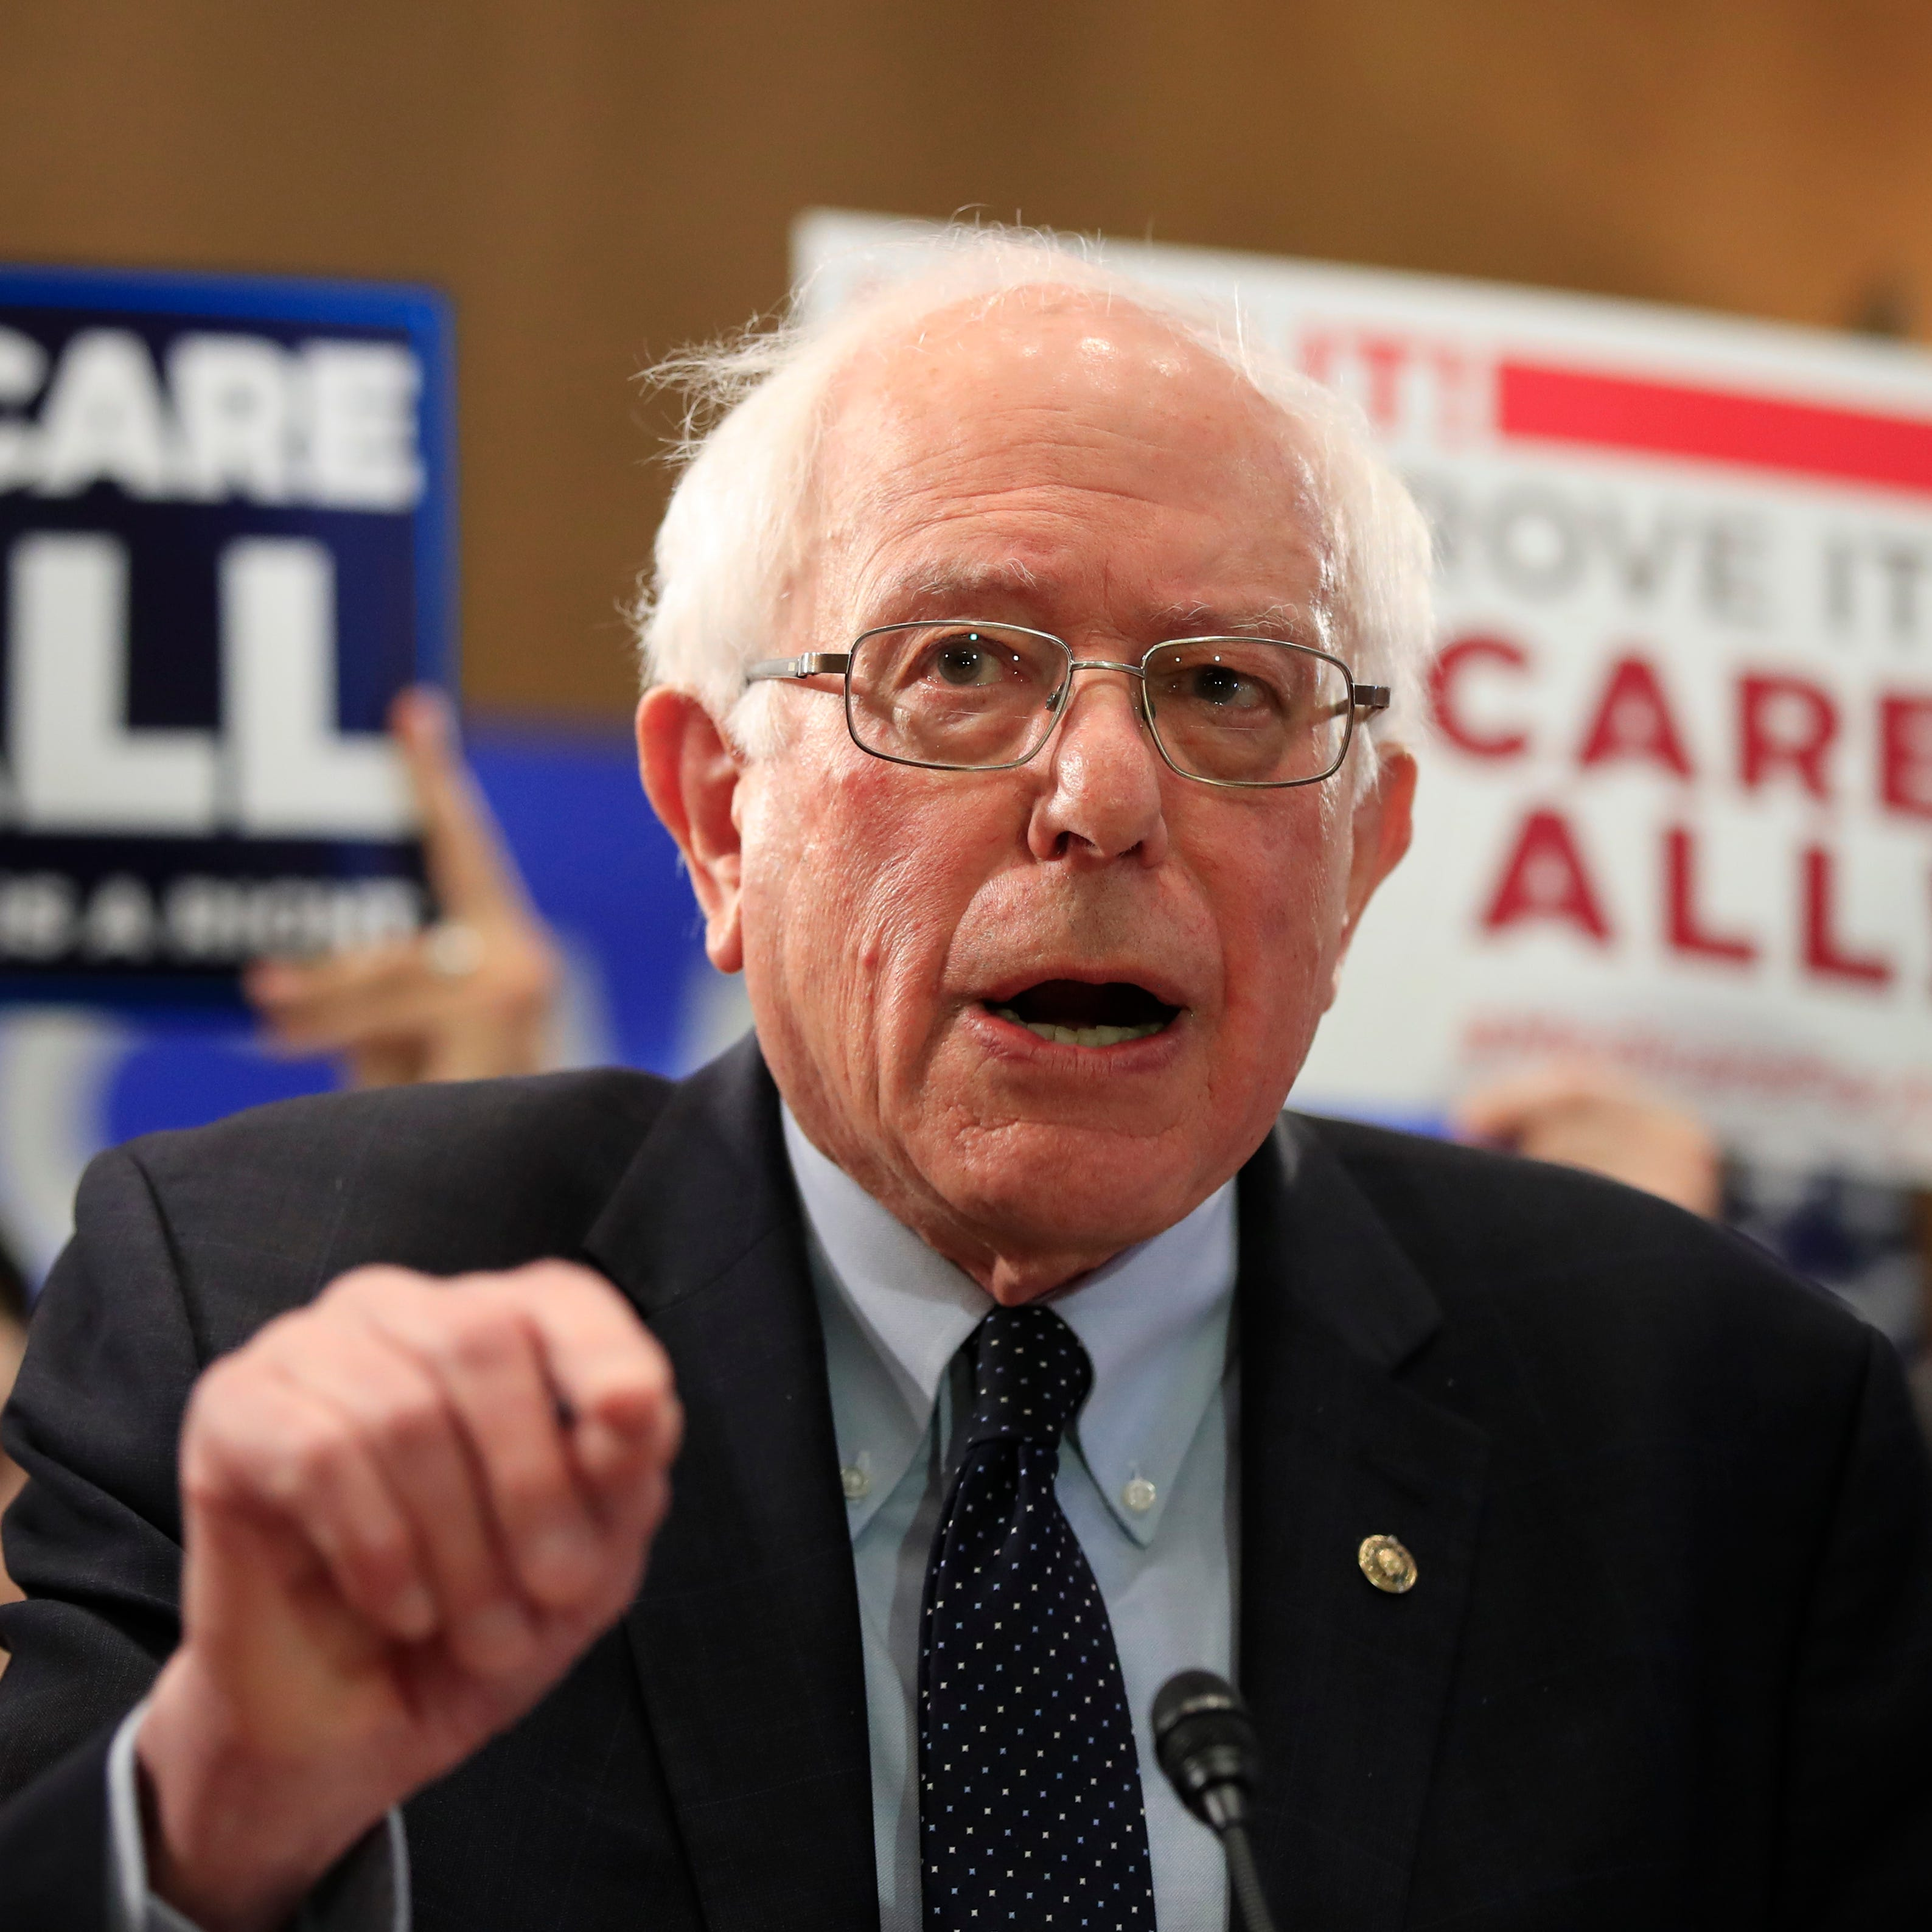 Medicare for All makes sense and would cost less and give better healthcare to Americans | Opinion